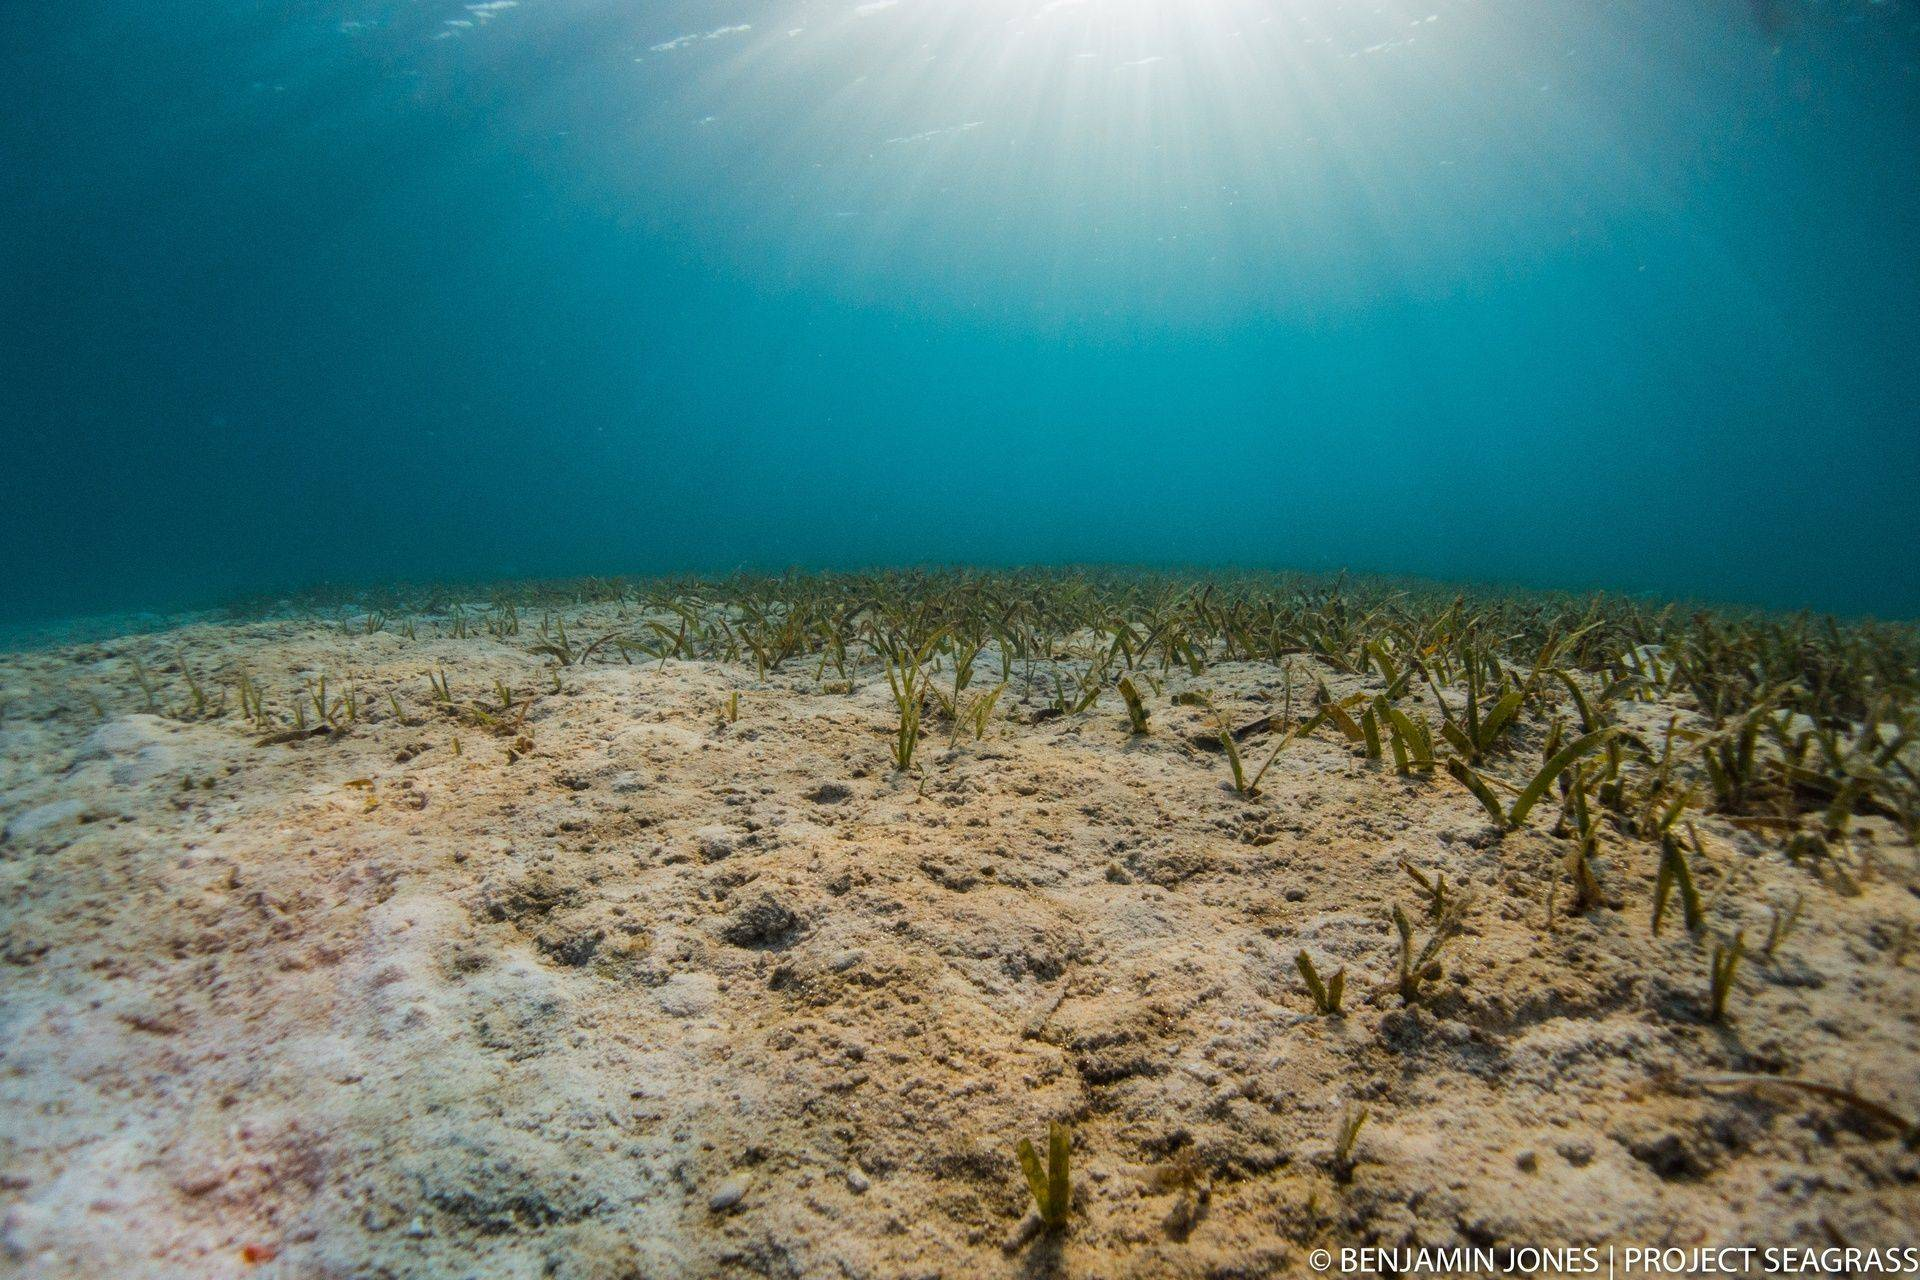 A Seagrass meadow in Indonesia. Photo by Benjmain Jones